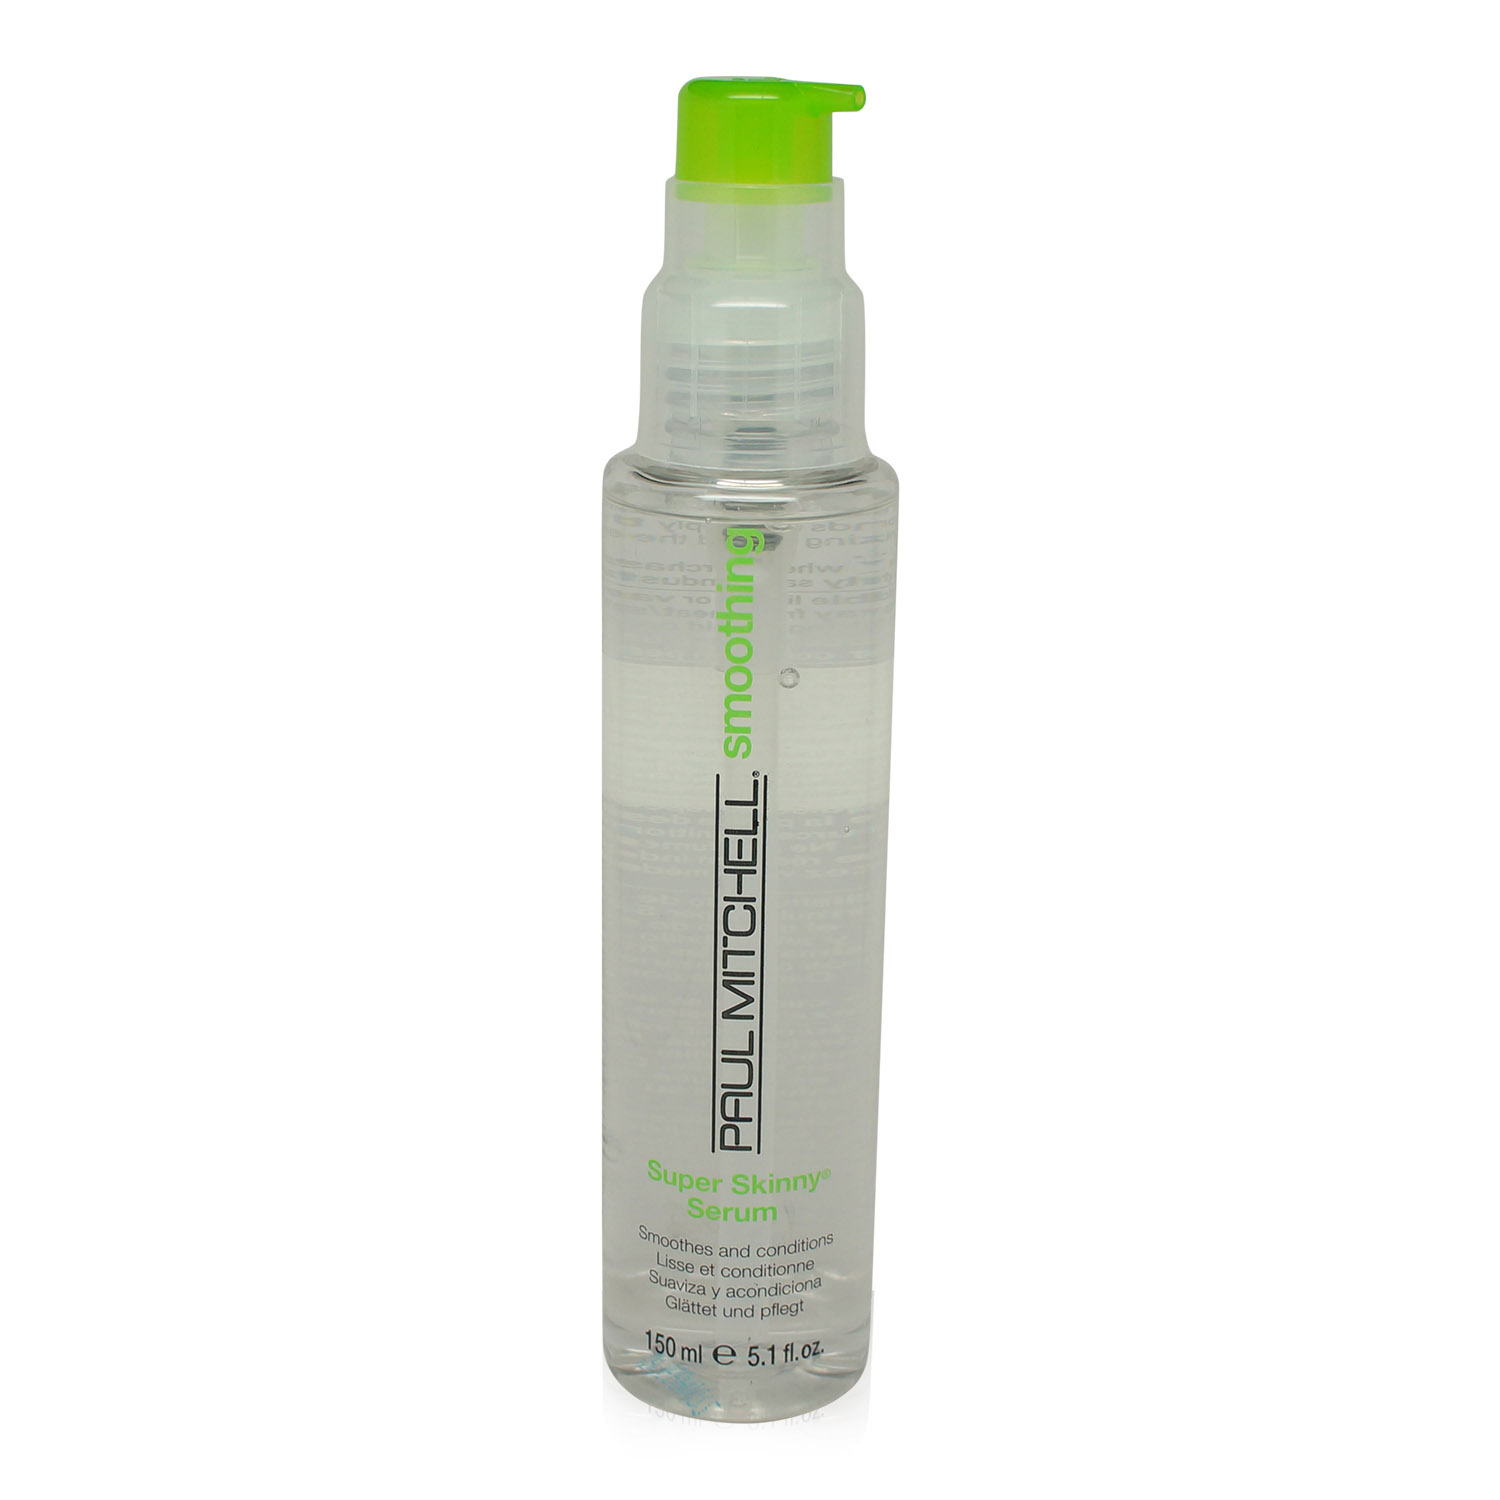 Paul Mitchell Smoothing Super Skinny Serum 5.1Oz